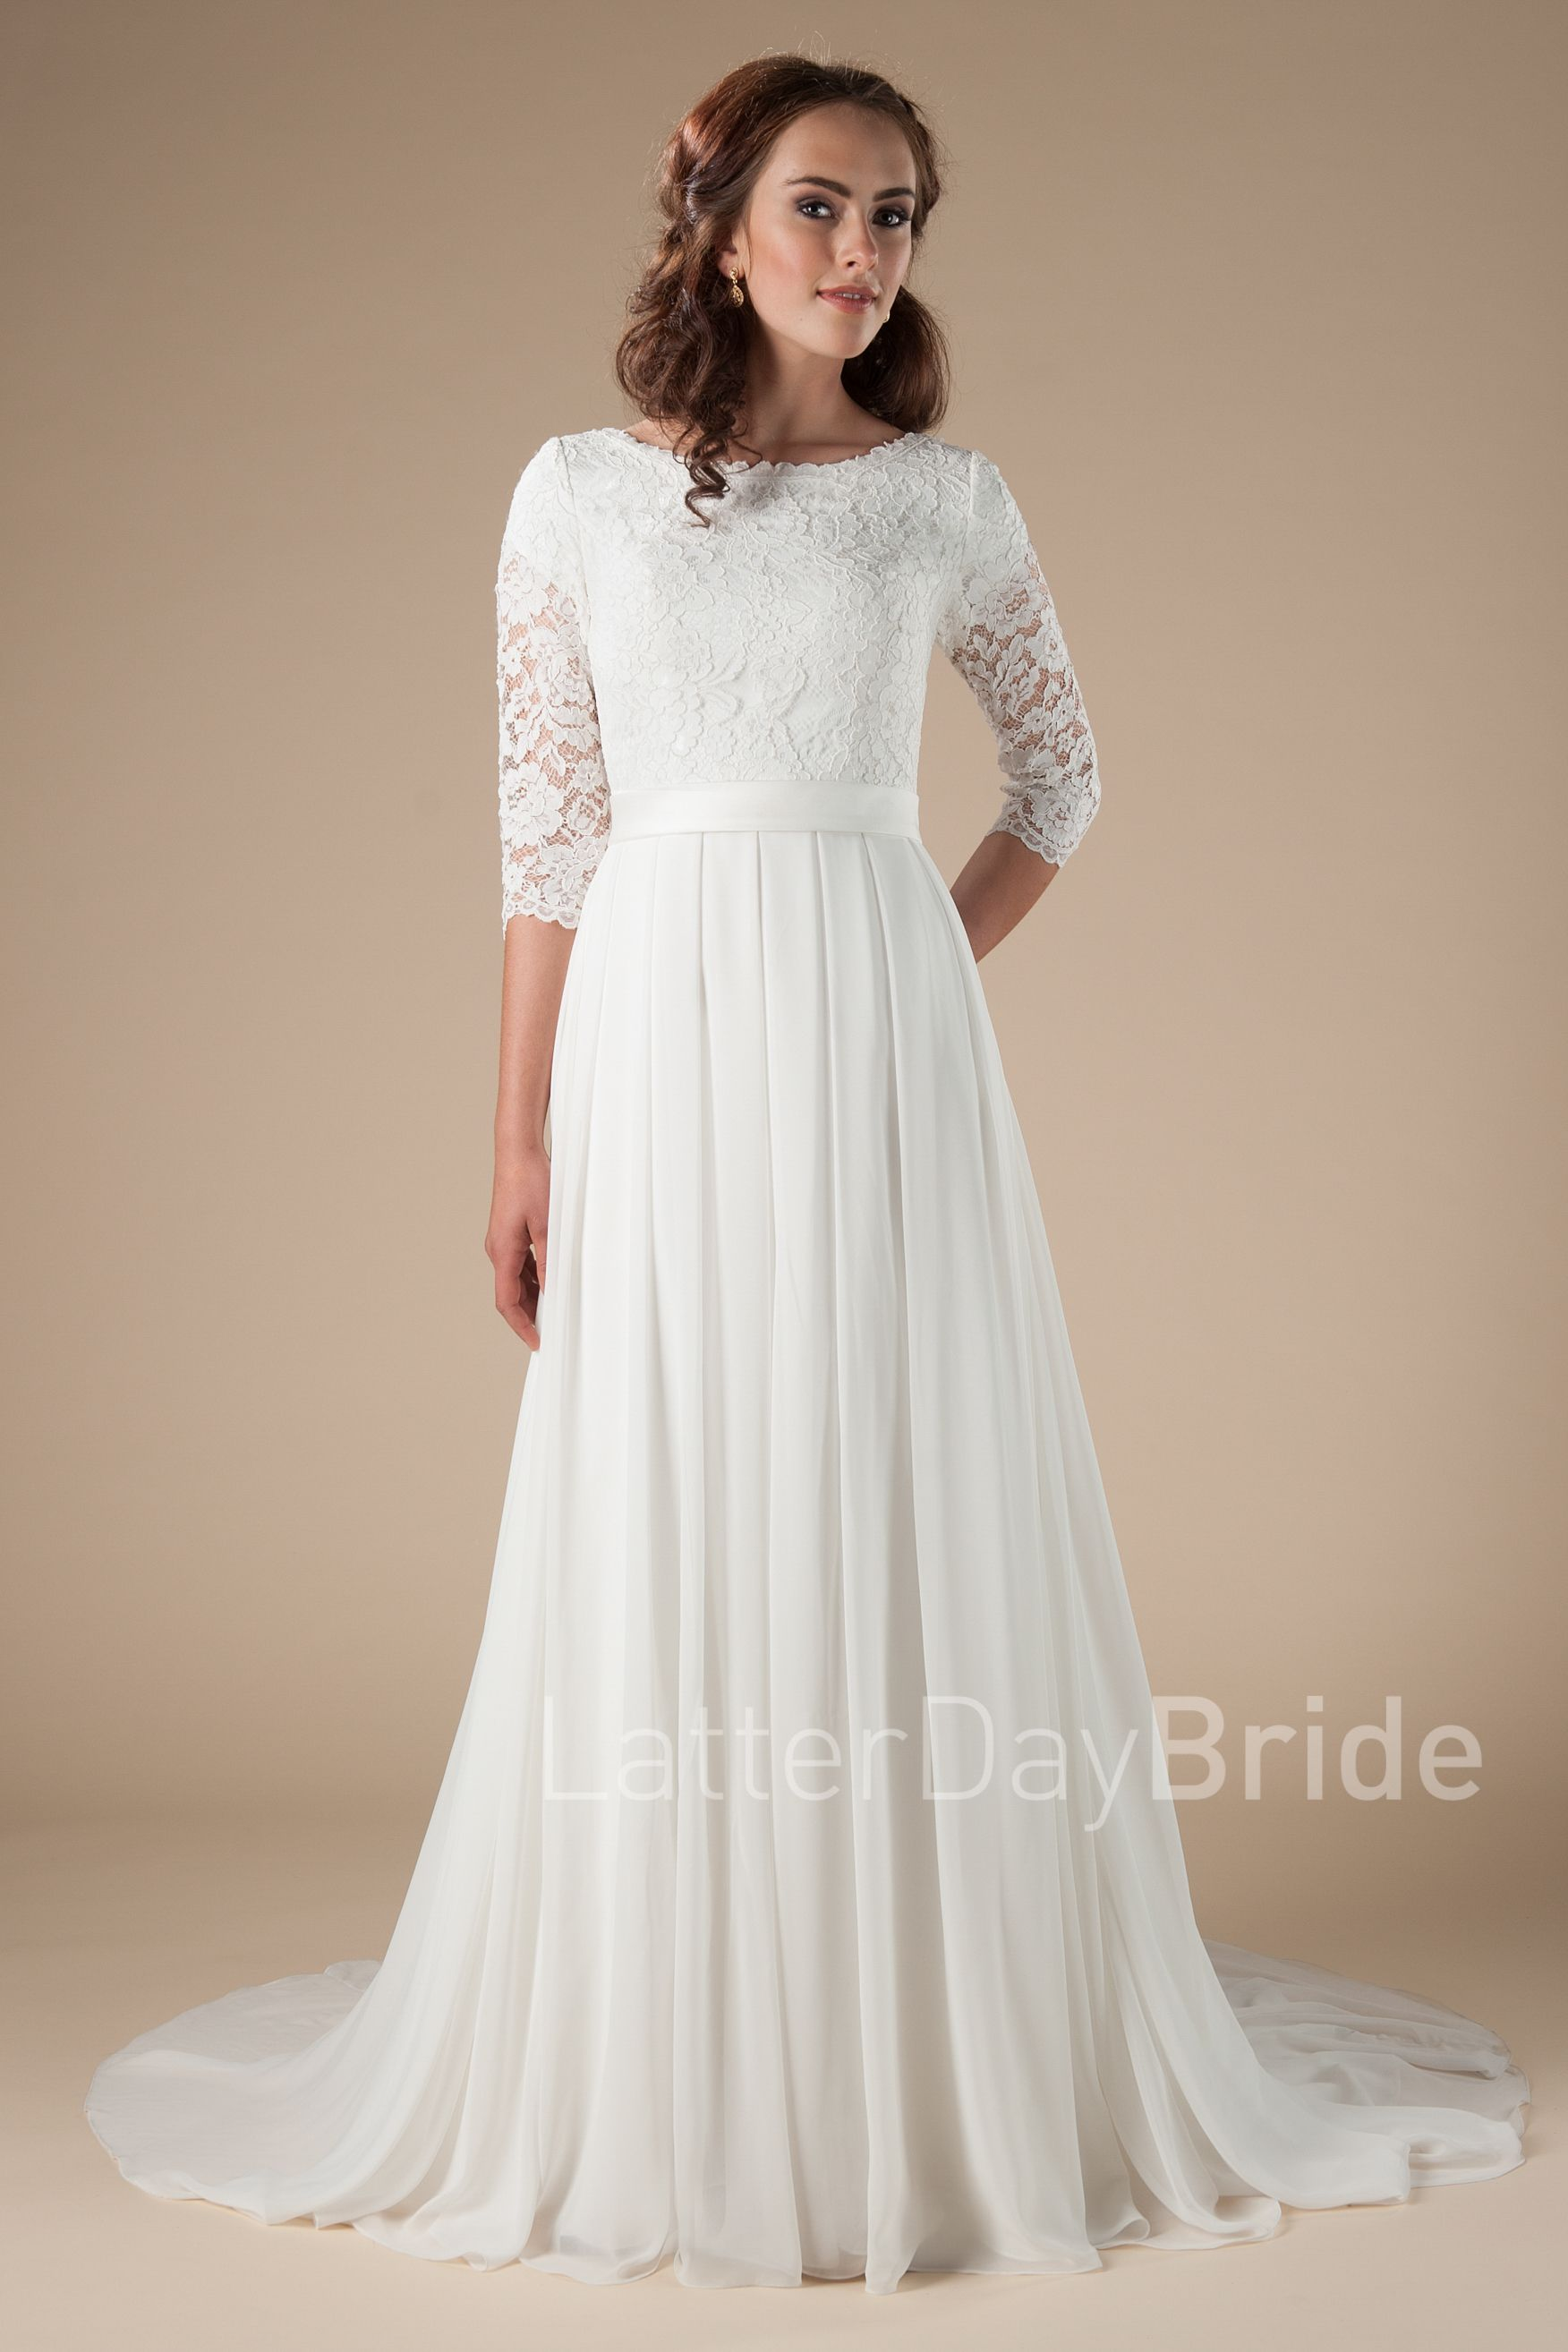 Modest long sleeve wedding gown  Modest Wedding Dresses  Haven  Dream Wedding Inspiration